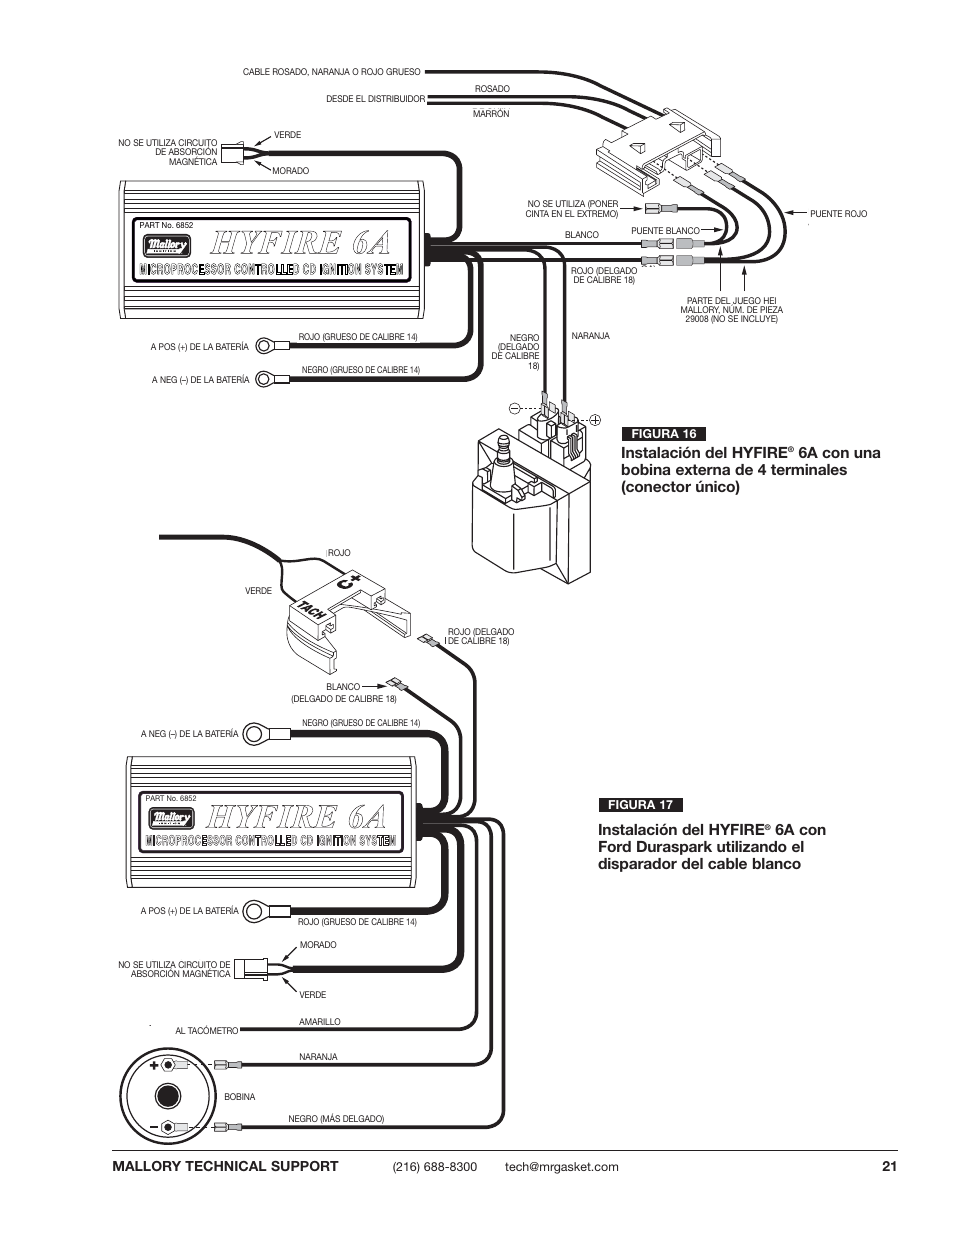 Mallory Magneto Ignition Wiring Diagram Scooters Harness